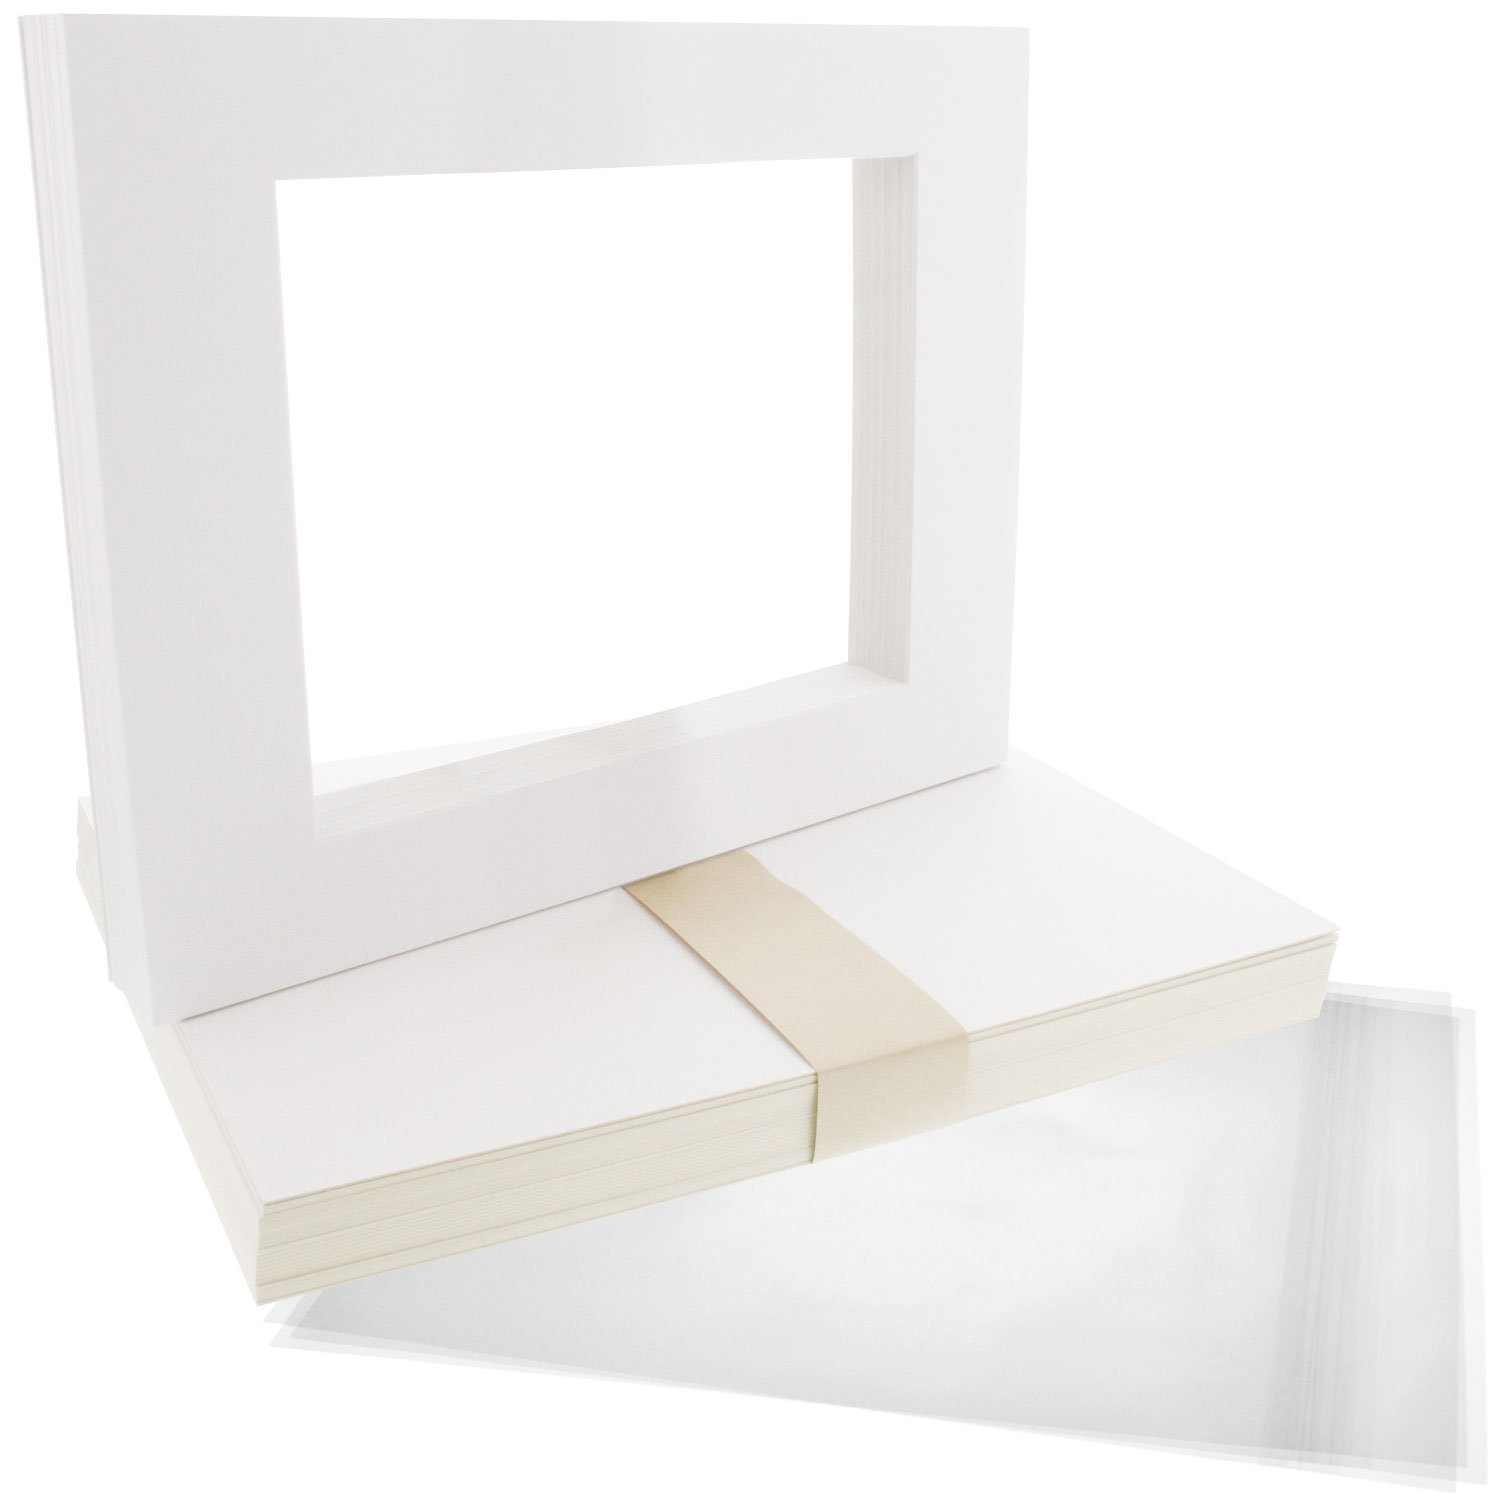 US Art Supply Art Mats Acid-Free Pre-Cut 8x10 White Picture Mat Matte Sets. Includes a Pack of 25 White Core Bevel Cut Mattes for 5x7 Photos, Pack of 25 Backers & 25 Clear Sleeve Bags